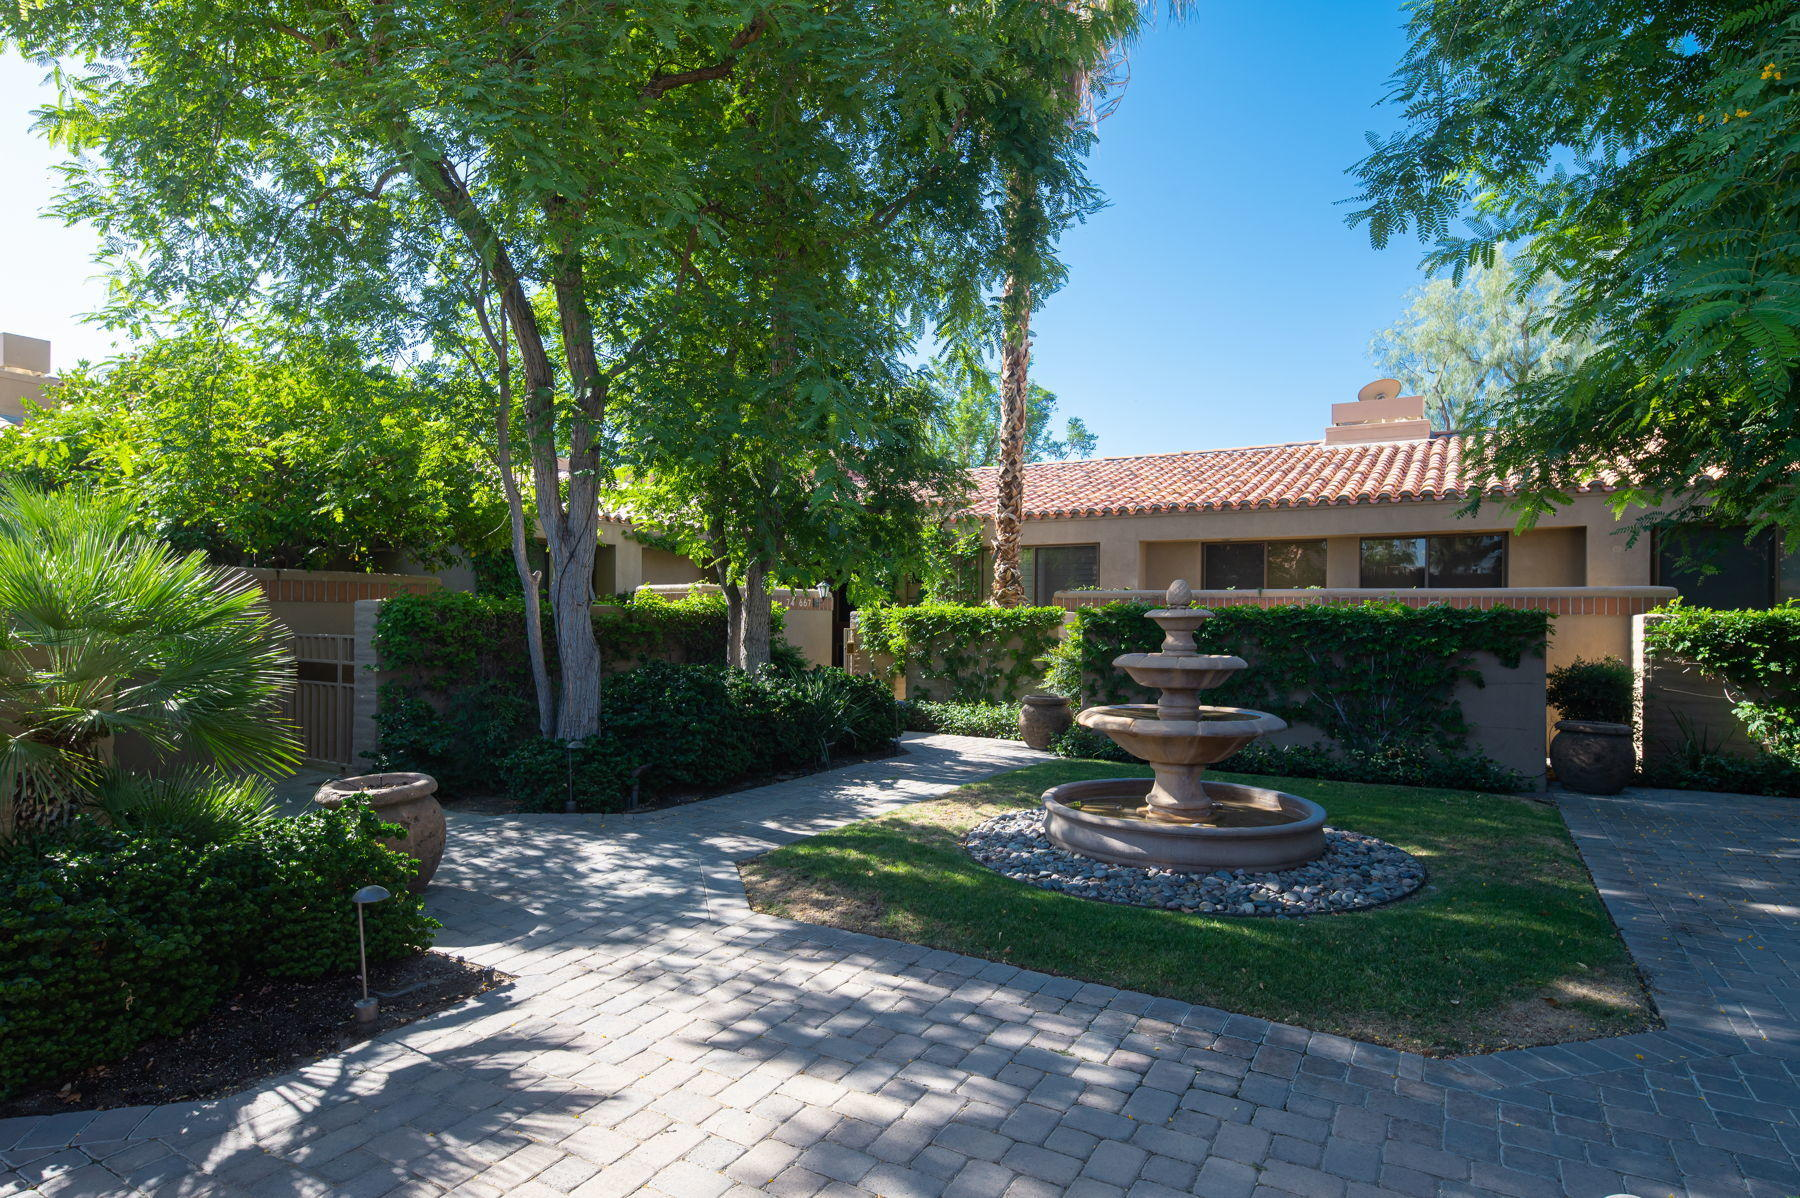 74671 Arroyo Drive, Indian Wells, California 92210, 2 Bedrooms Bedrooms, ,3 BathroomsBathrooms,Residential,For Sale,74671 Arroyo Drive,219045583